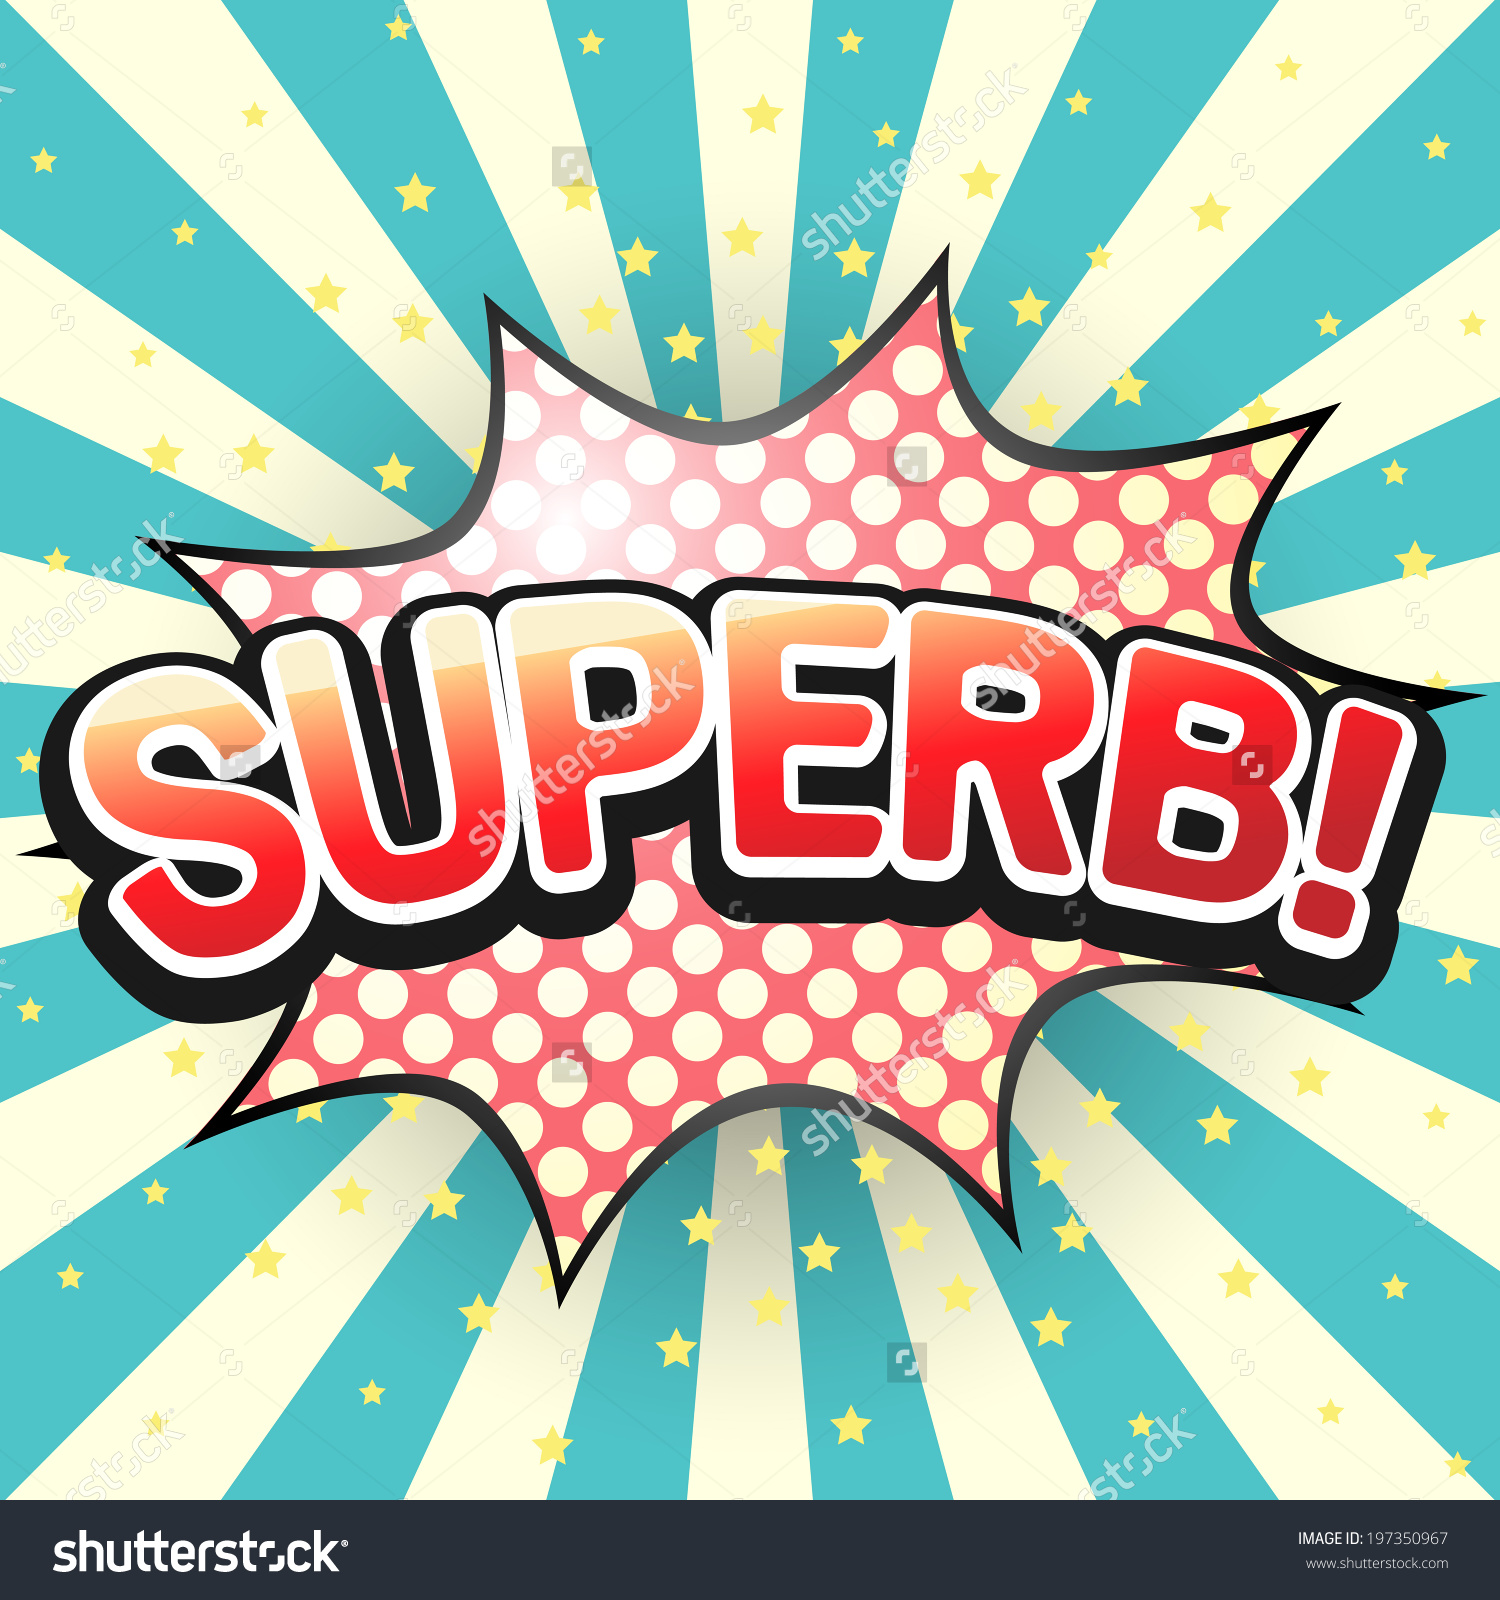 Superb Comic Speech Bubble Vector Illustration Stock Vector.